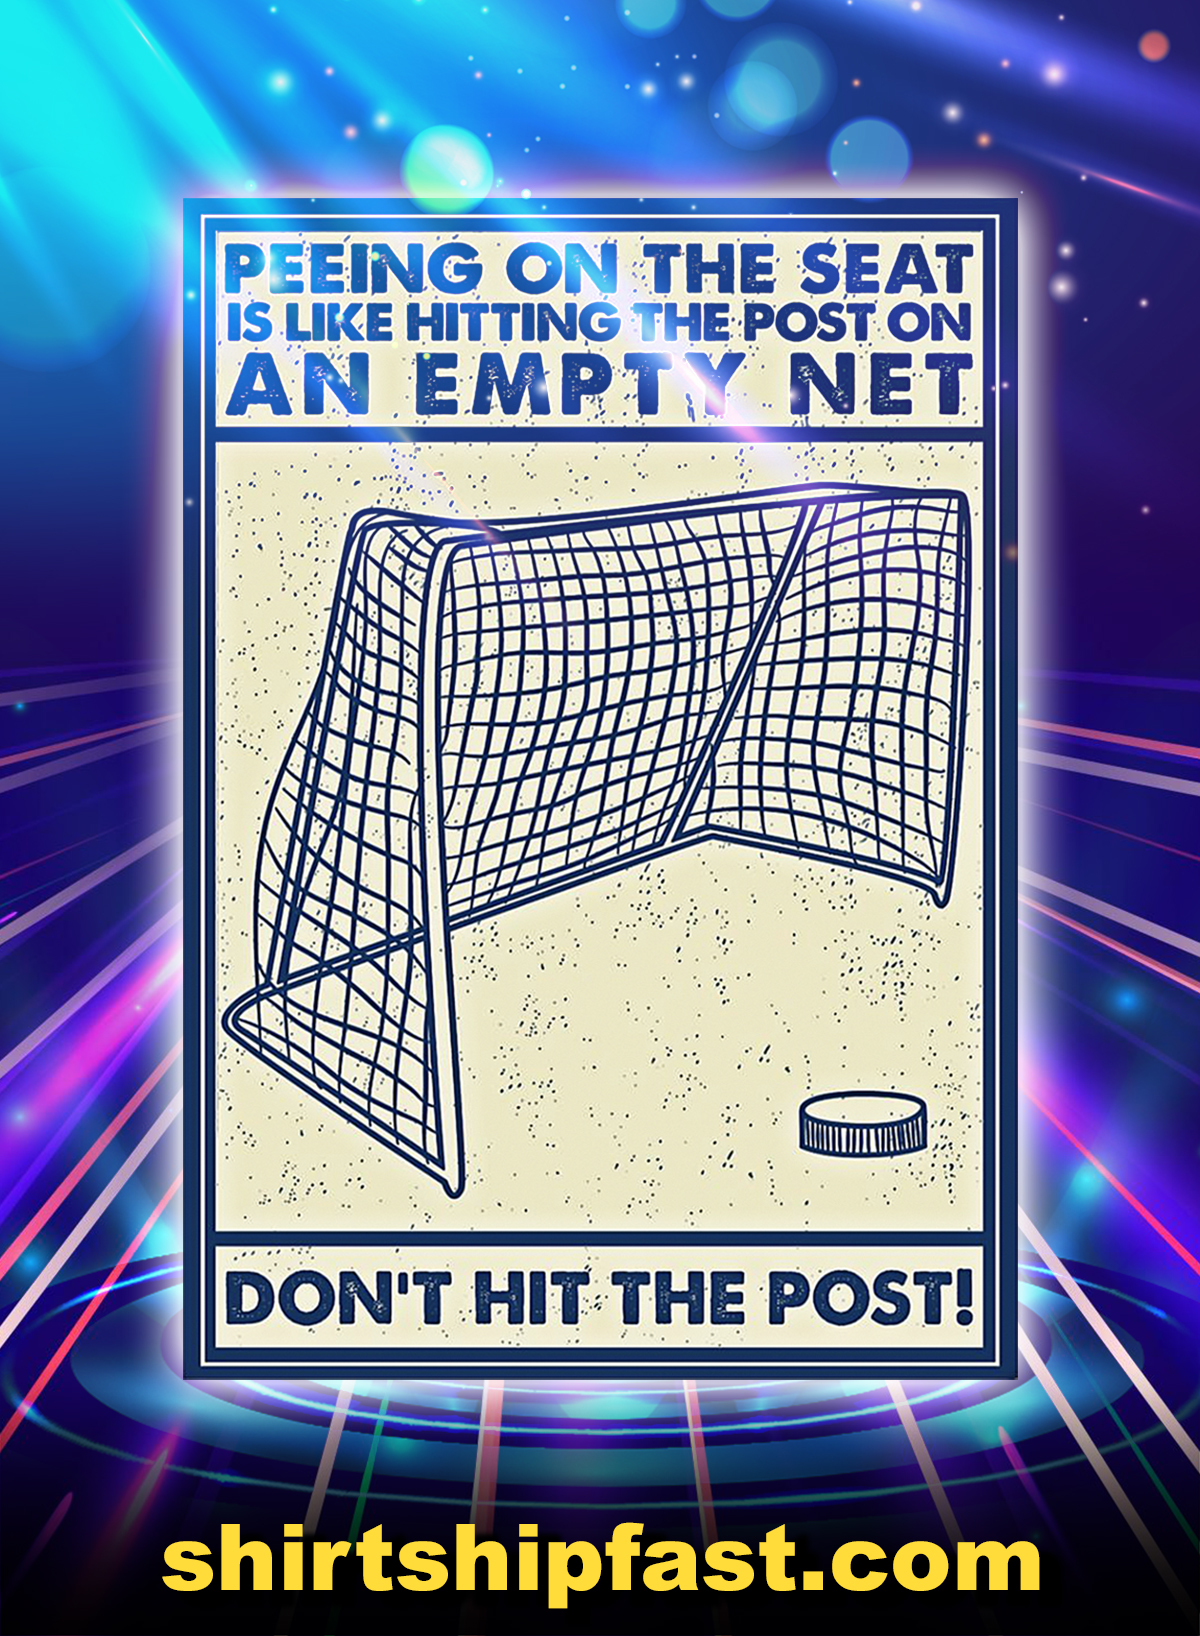 Retro Hockey peeing on the seat is like hitting the post on an empty net poster - A1